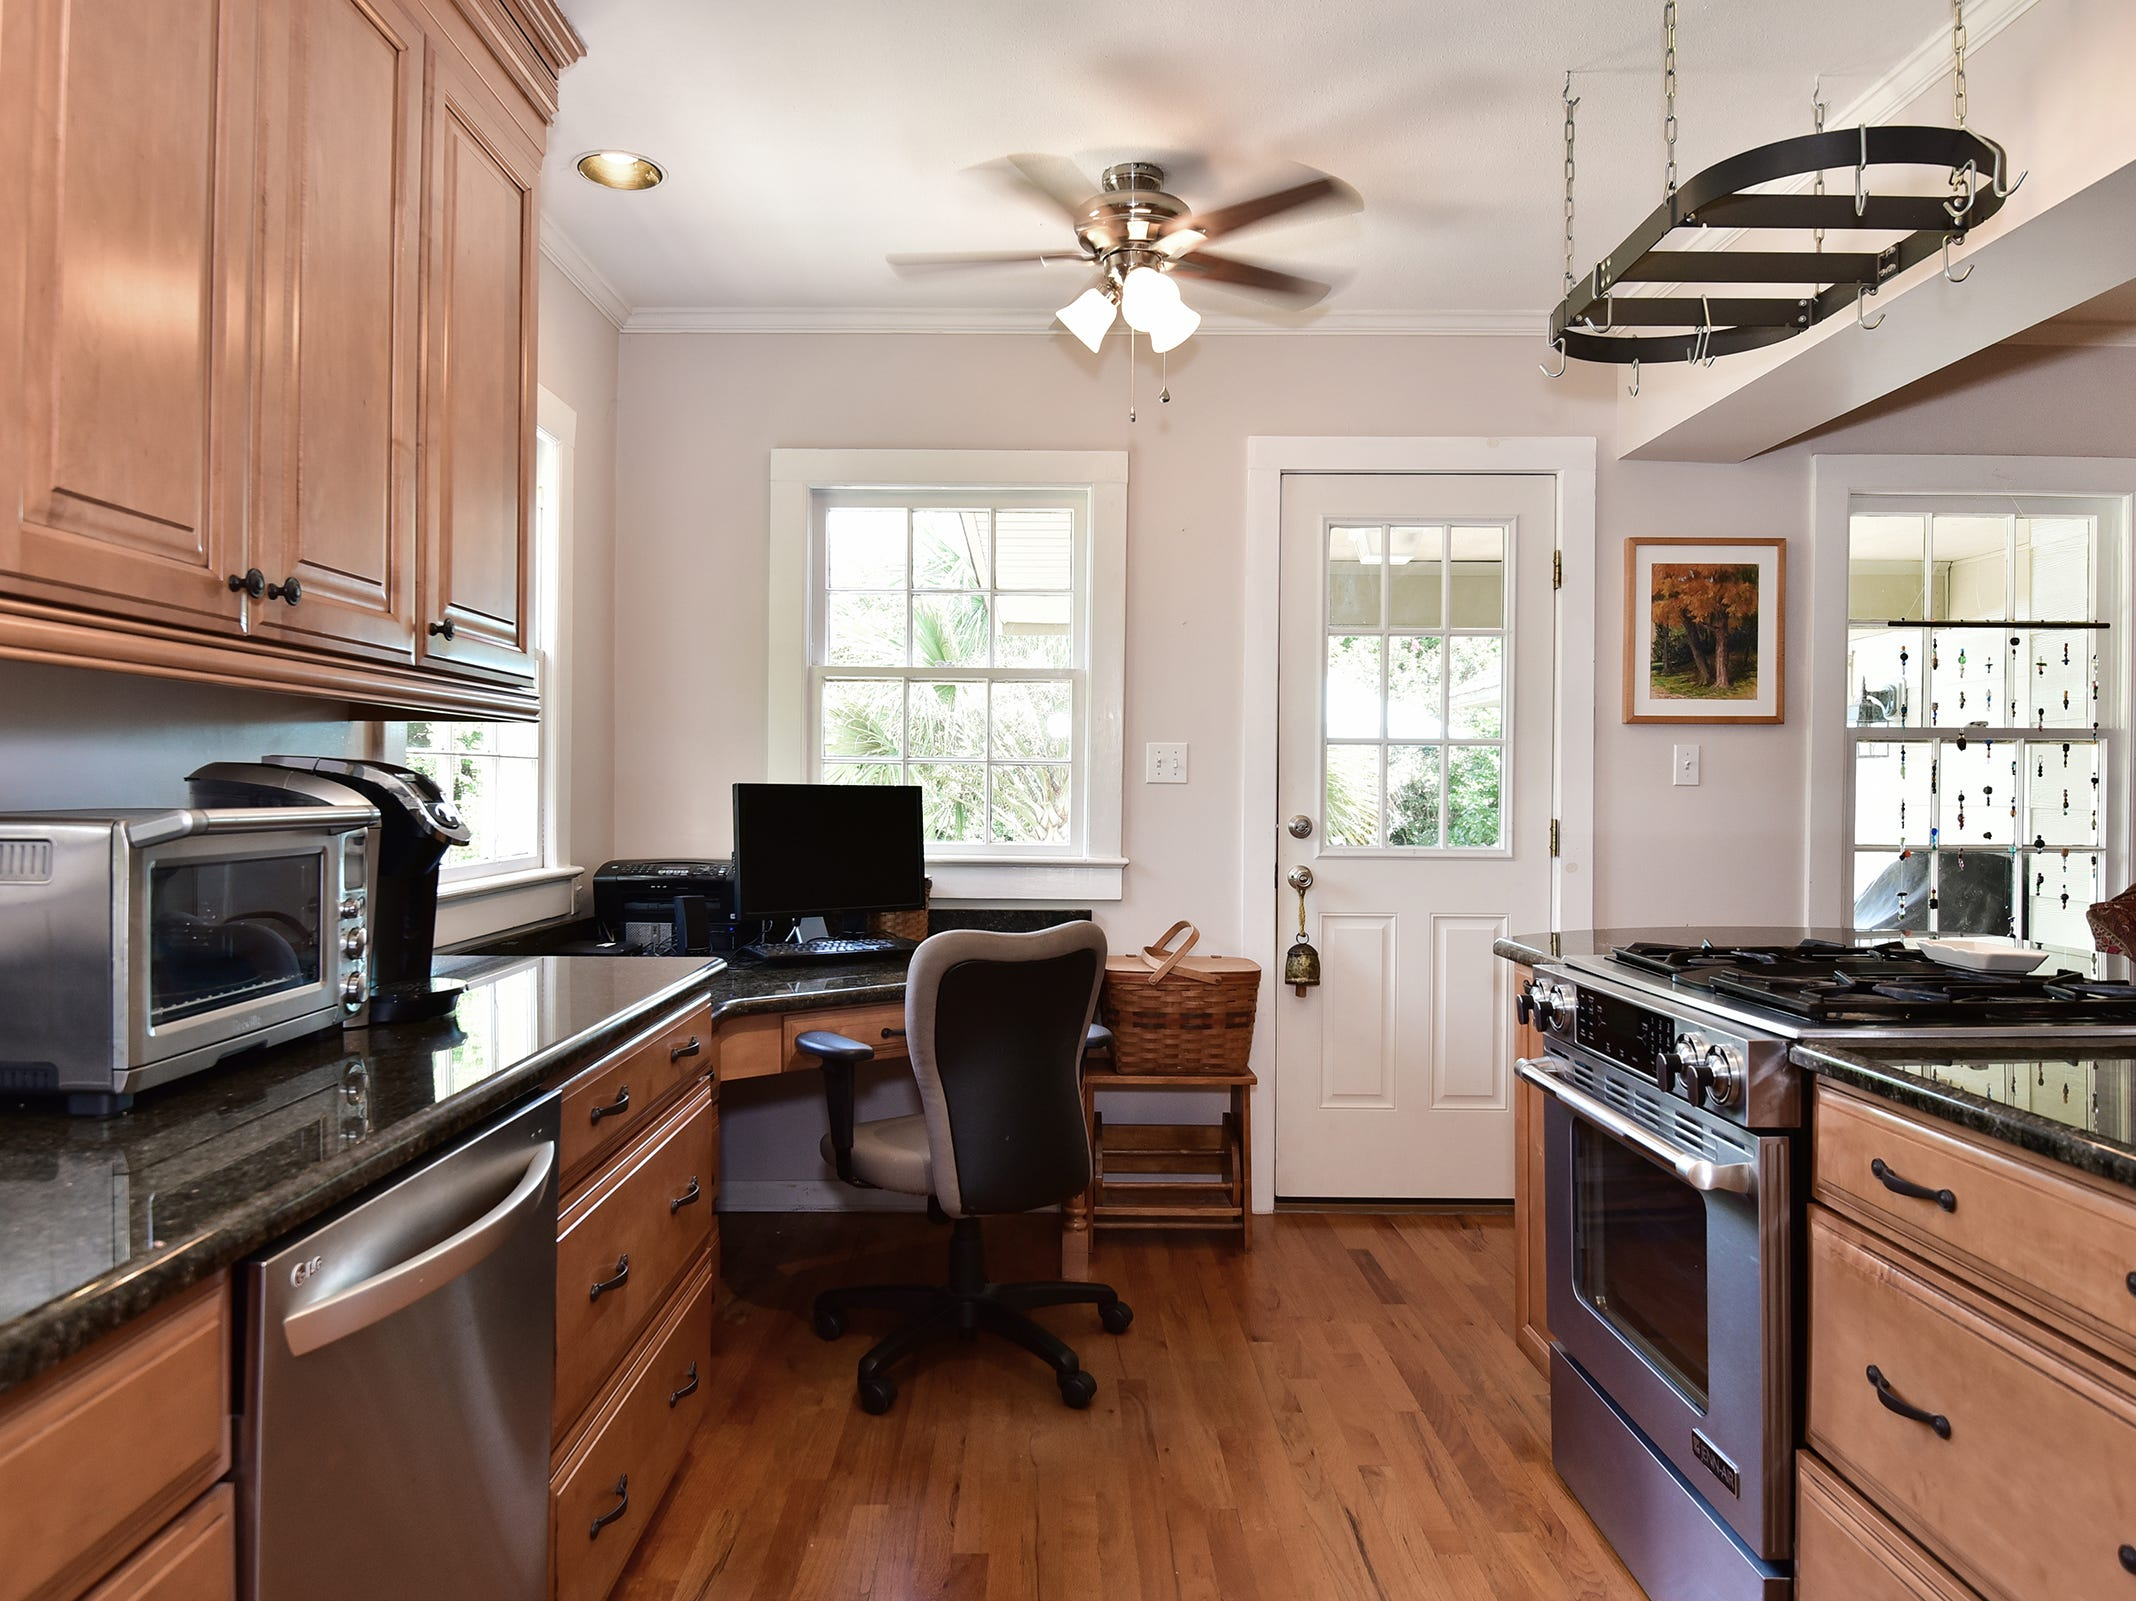 1812 Magnolia Avenue, the kitchen is open overlooks the rear lawn.